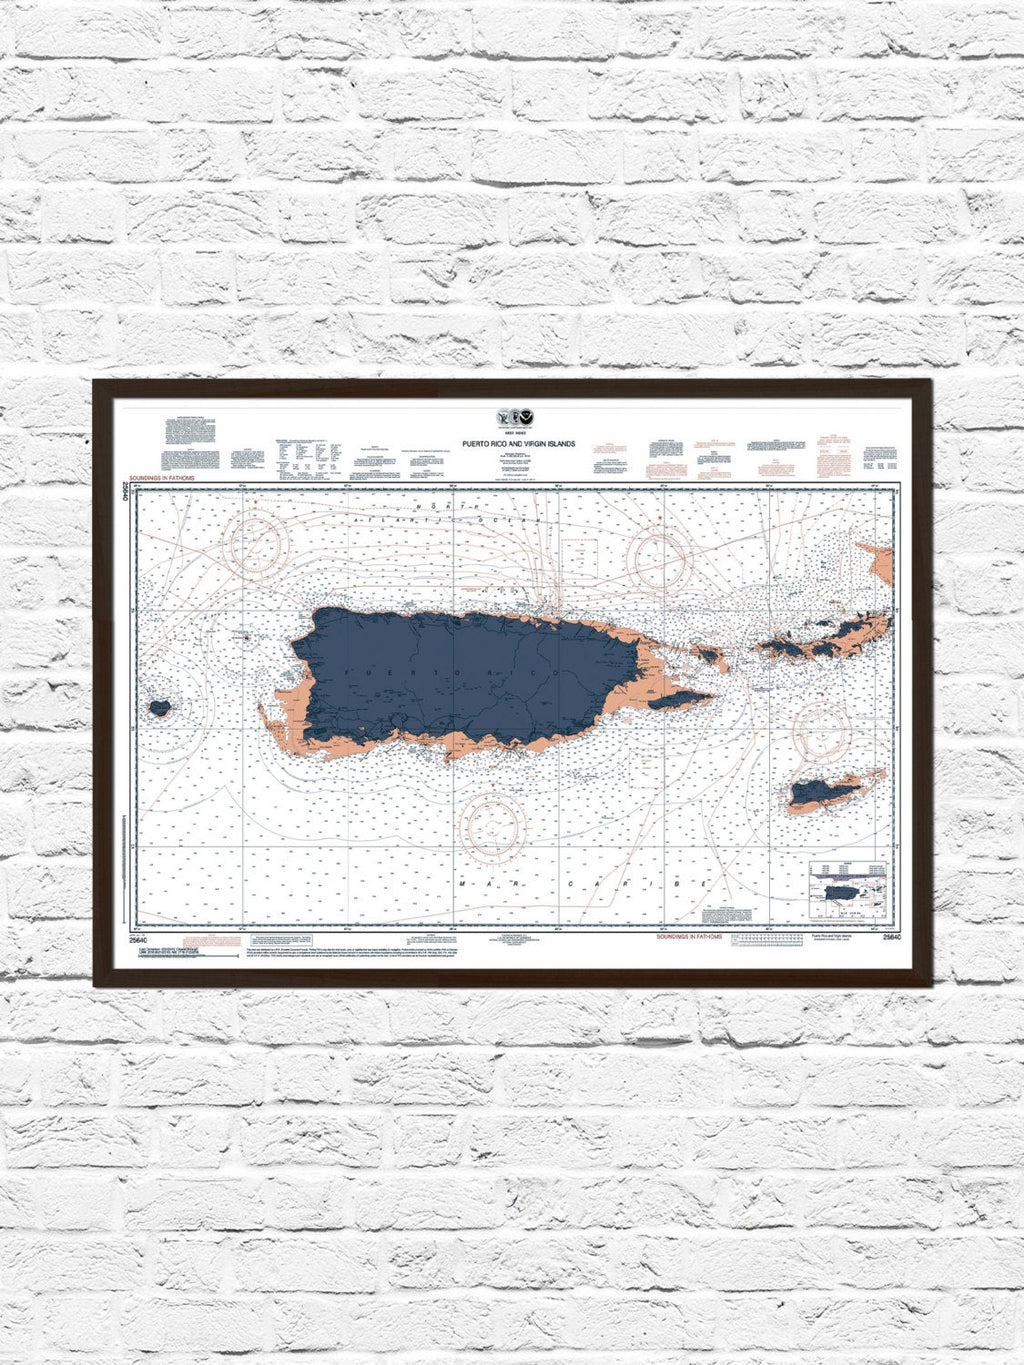 Puerto Rico Nautical Chart Map Art Poster Print, Puerto Rico Map, Puerto Rico Poster, Puerto Rico Print, Nautical Chart, Boating, Sailing